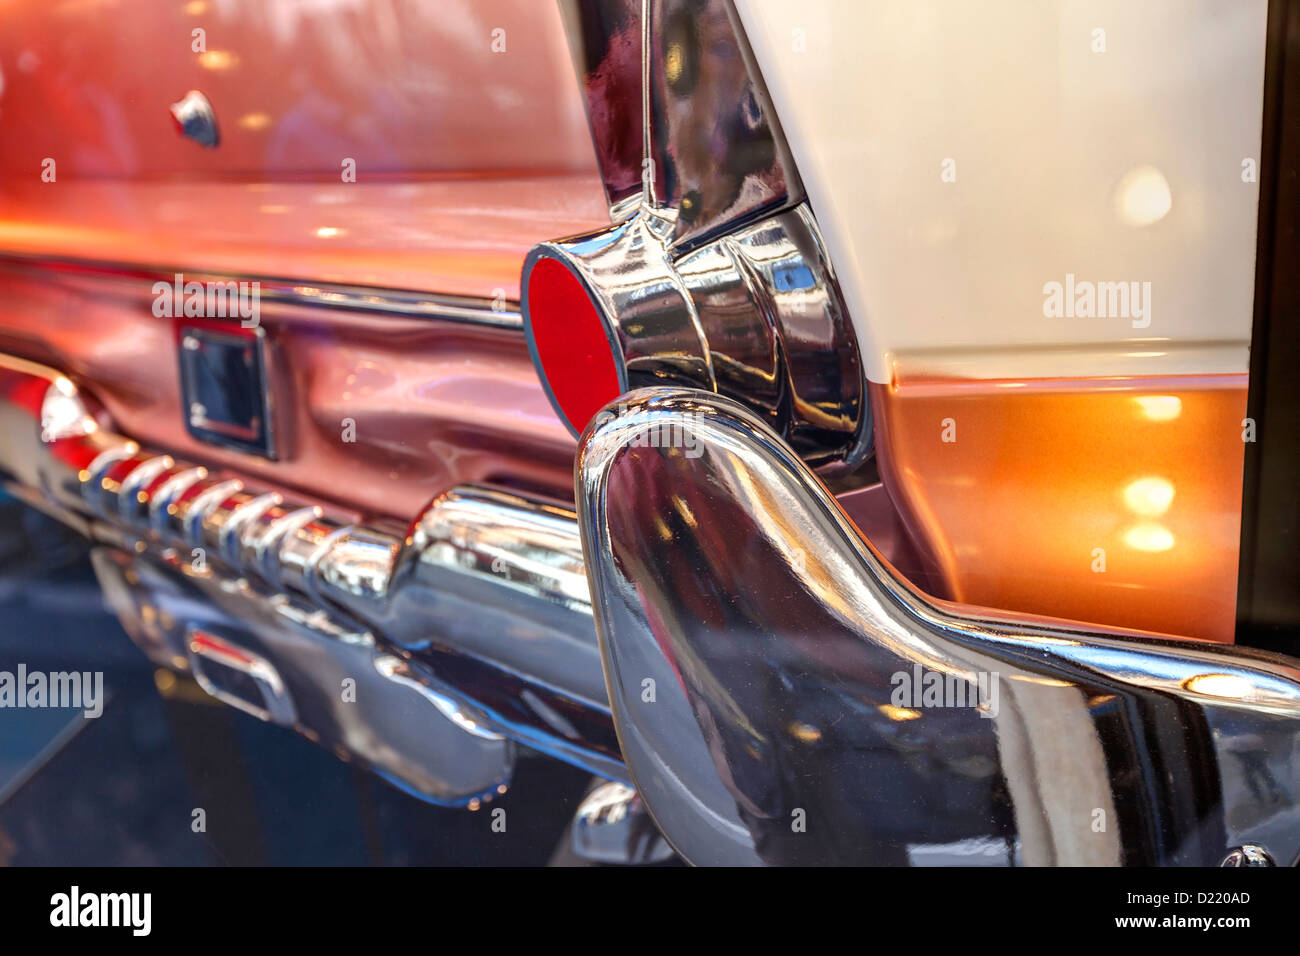 Cadillac rear view - Stock Image